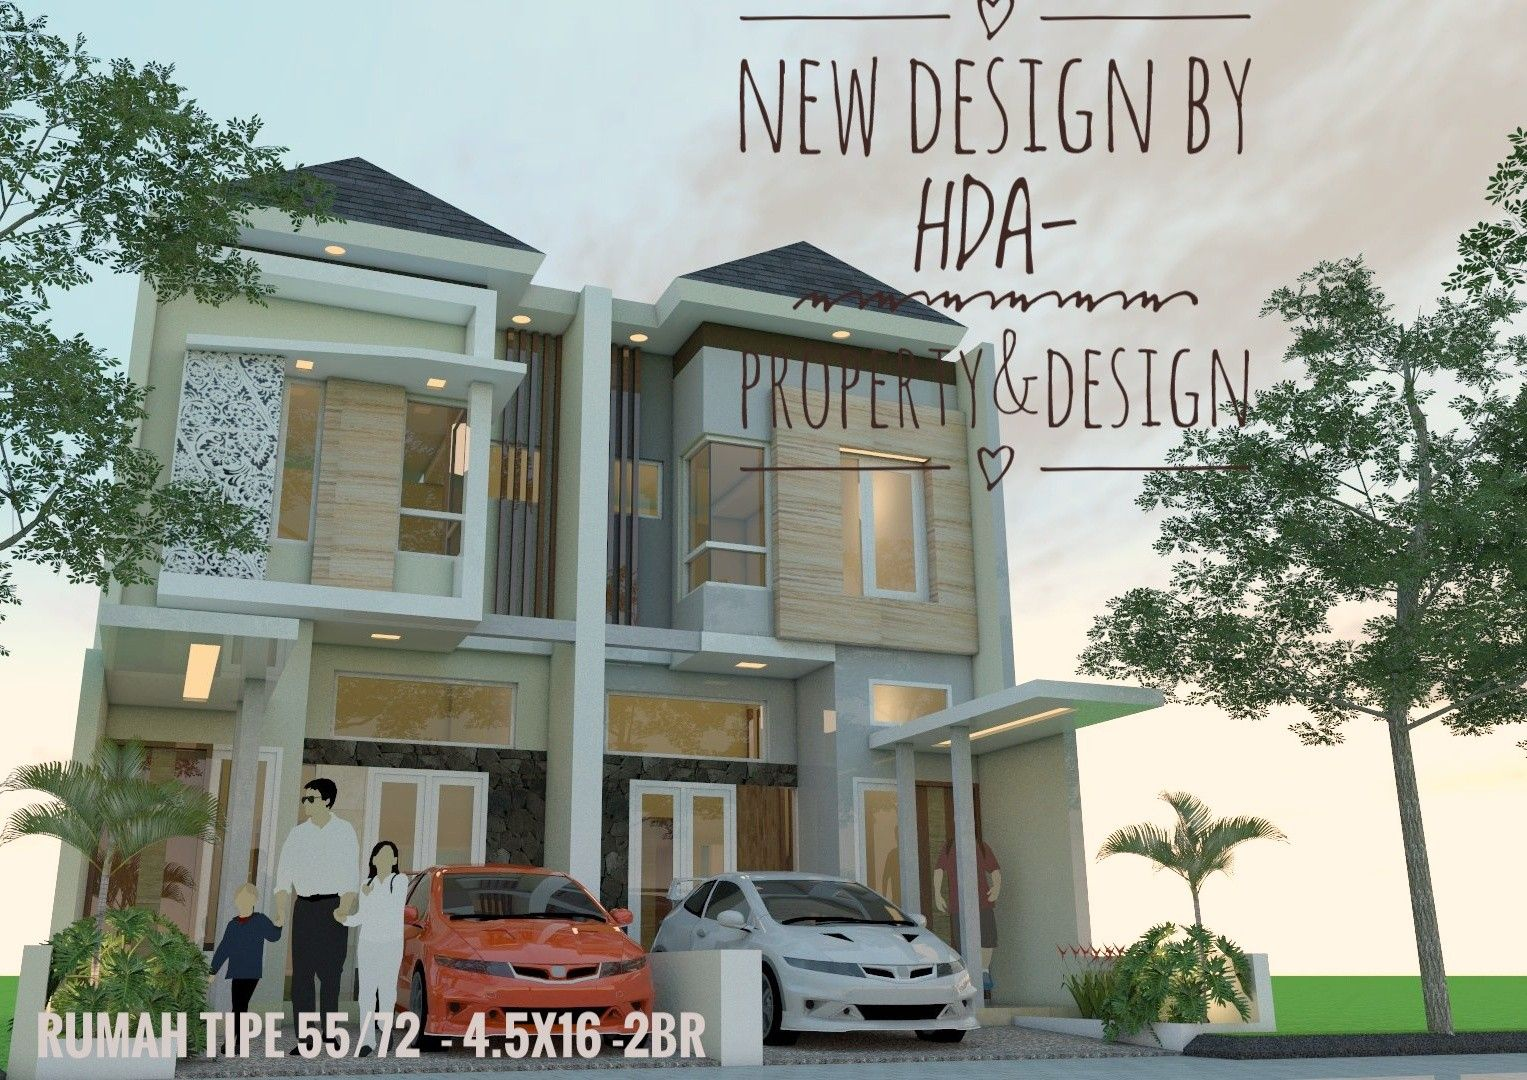 My New Design For House At Small Land Only 4 5m Wide This Land Area Is 4 5x16 I Design 2 Floor With Build Area Is 50m2